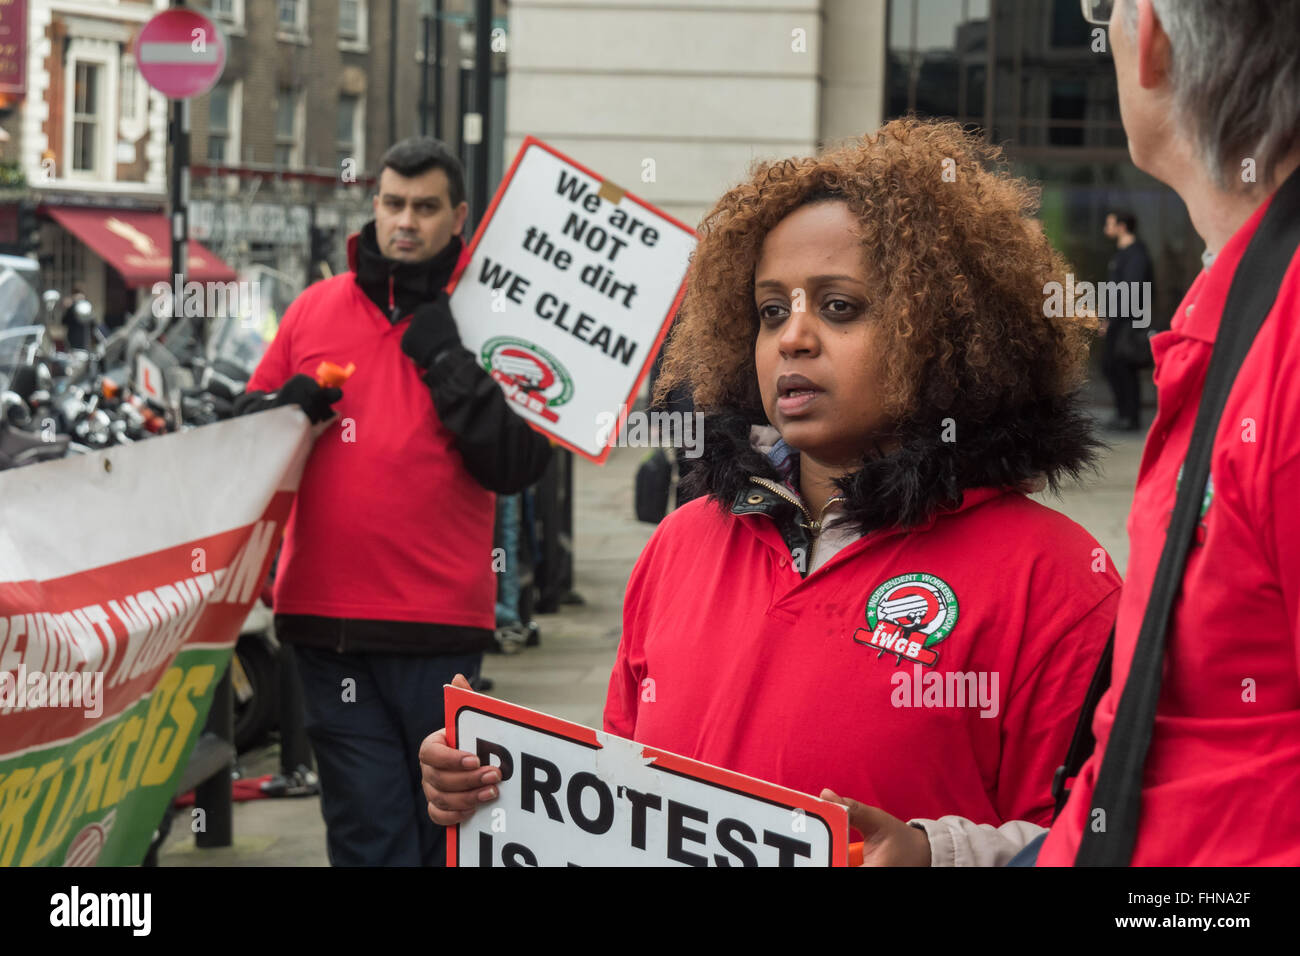 London, UK. 25th February, 2016. IWGB union rep Hanna Abebe speaks at  protest outside Bloomberg London calling - Stock Image